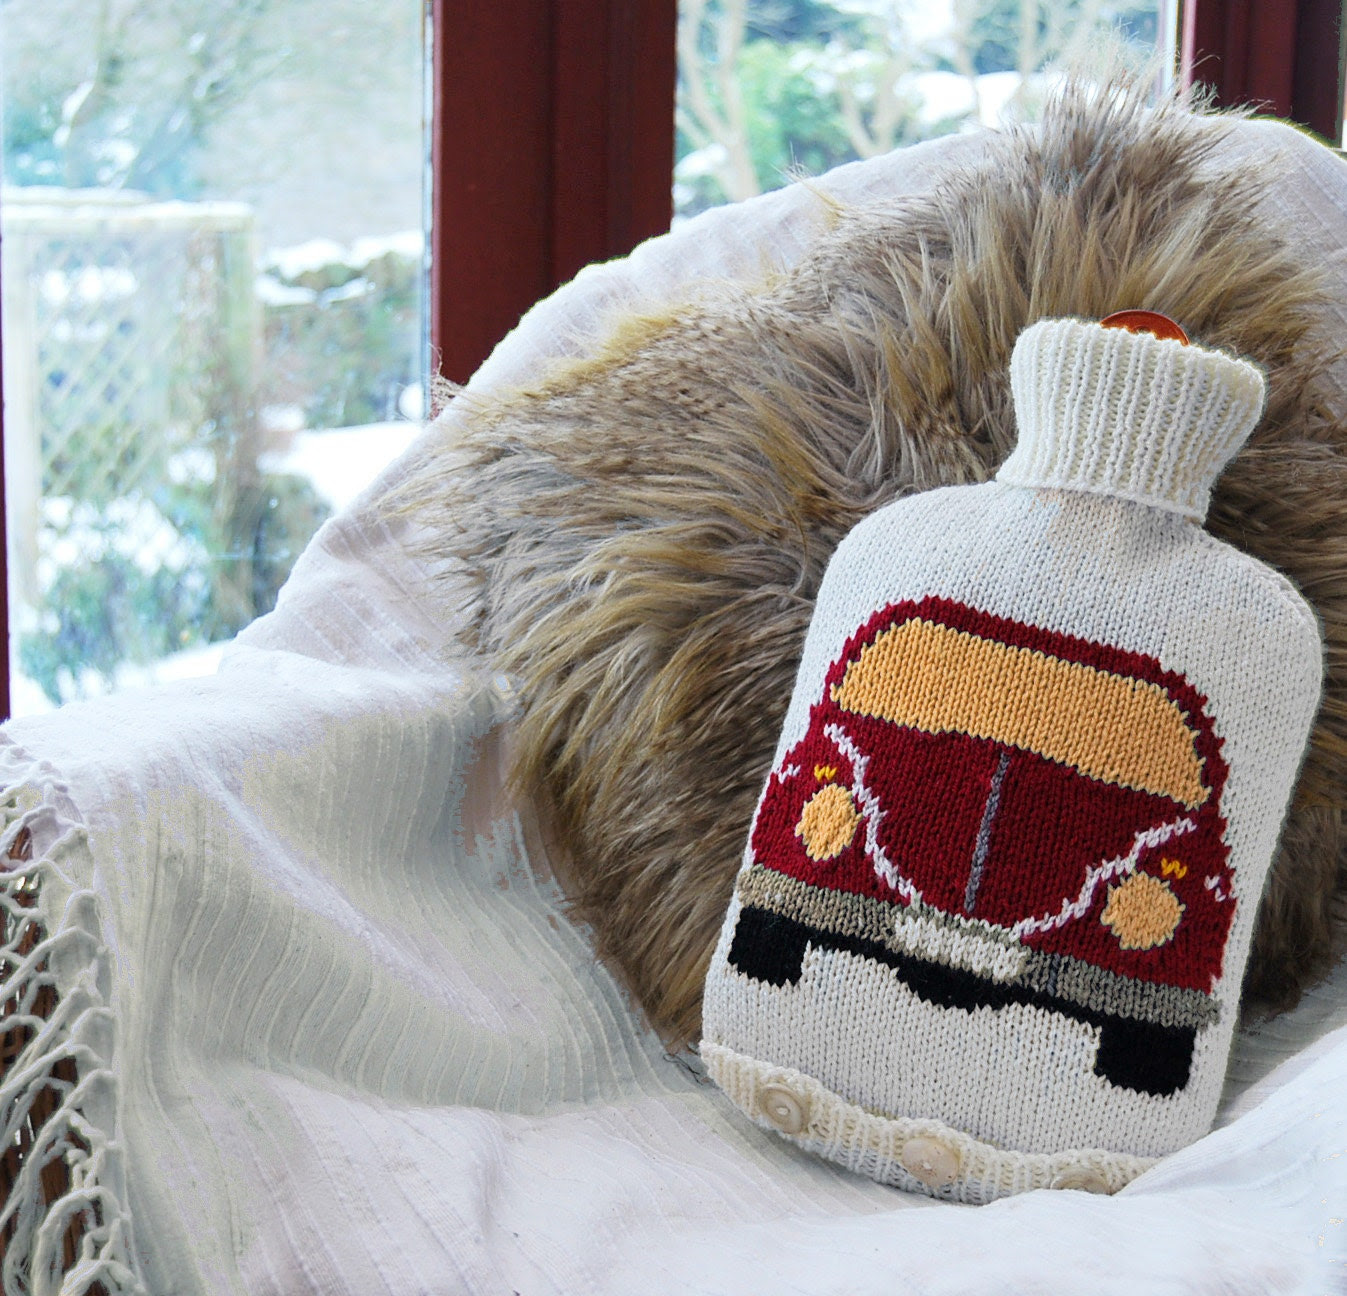 Knitting Pattern - Knit a Hot Water Bottle Cover Based on the VW (Volkswagen) Beetle / Bug